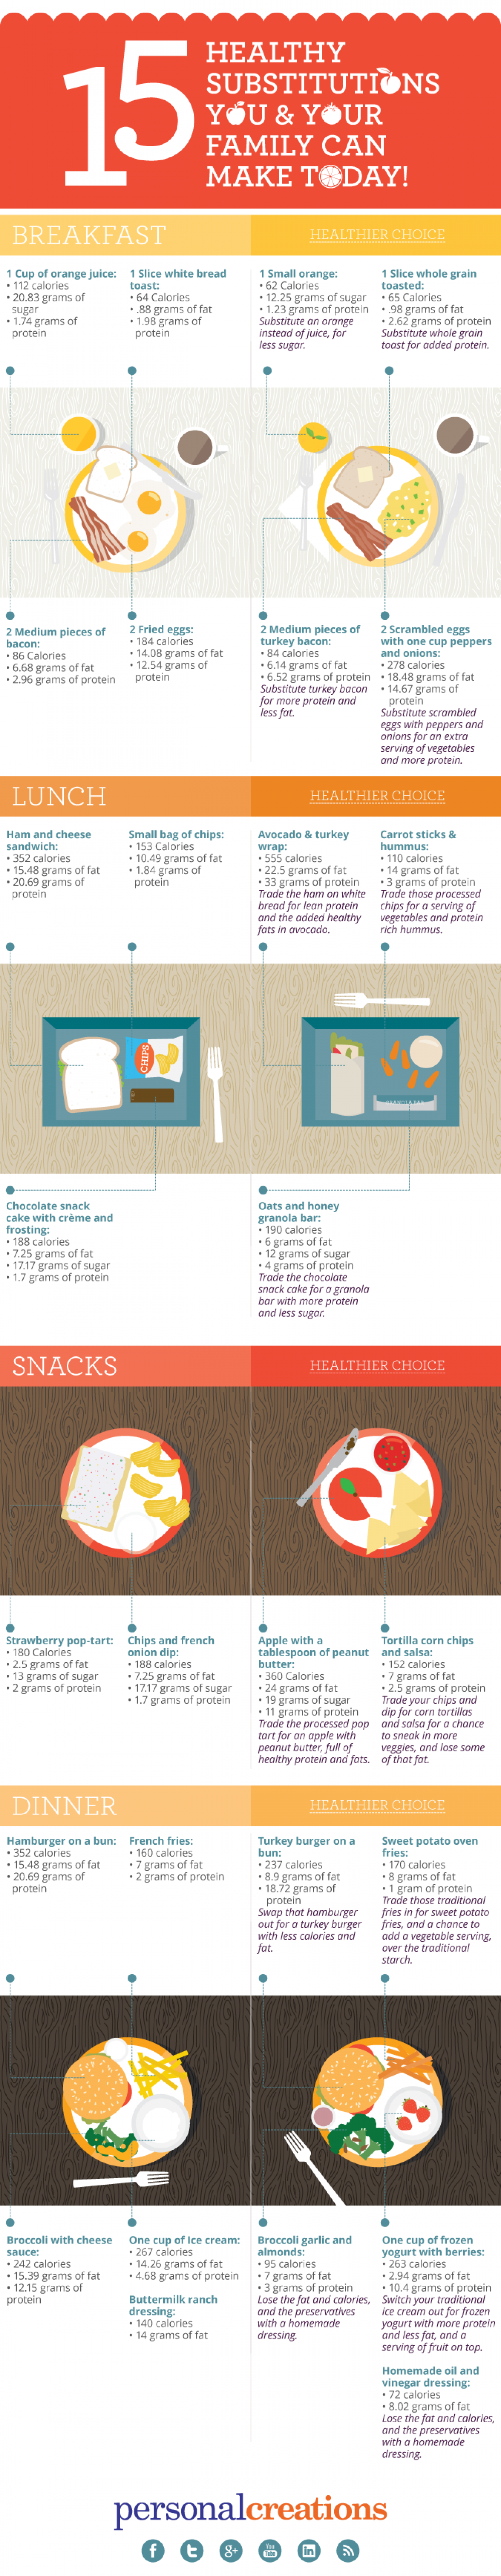 15 Healthy Substitutions You & Your Family Can Make Today Infographic